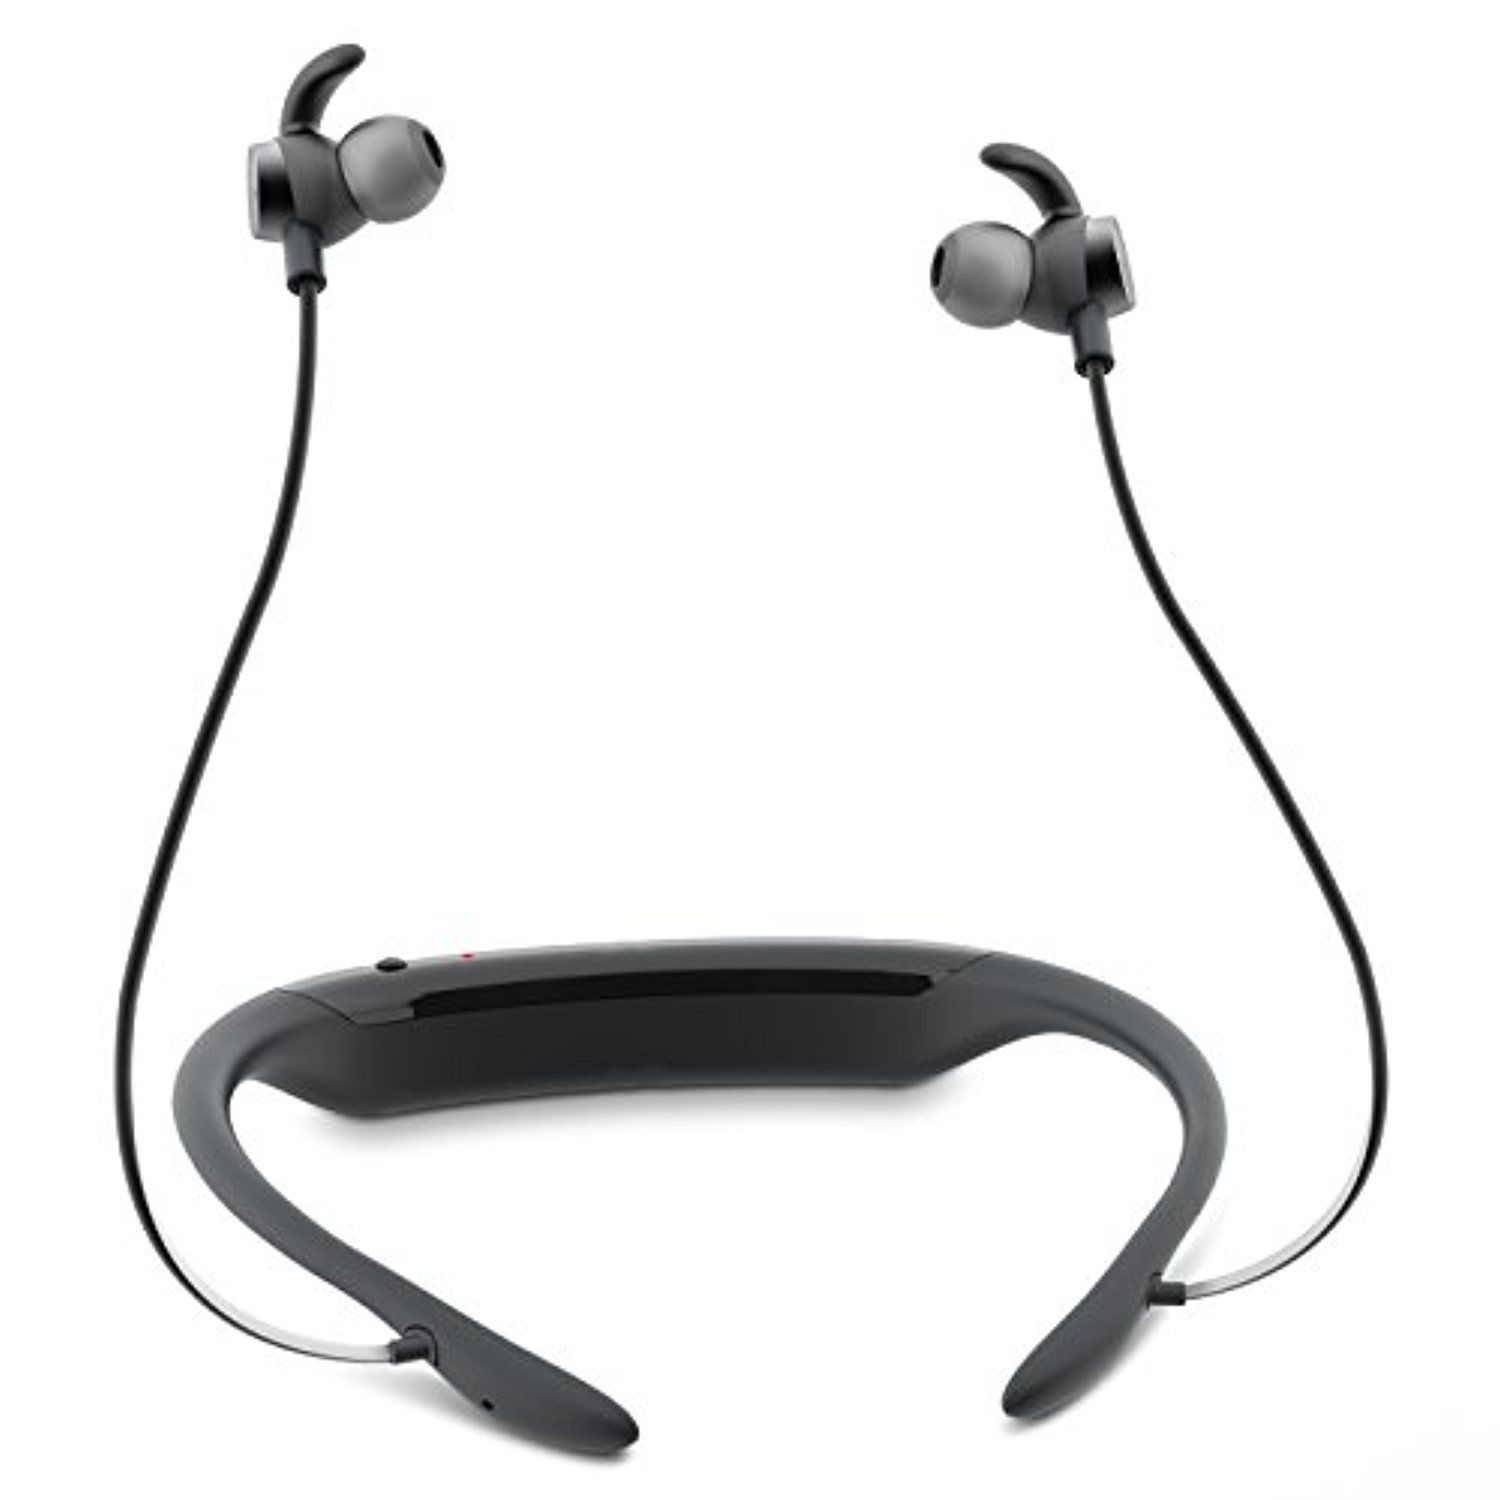 Jbl Reflect Response Sport Bluetooth In Ear Headphones Awesome Products Selected By Anna Churchill Jbl Reflect Bluetooth In Ear Headphones Headphones